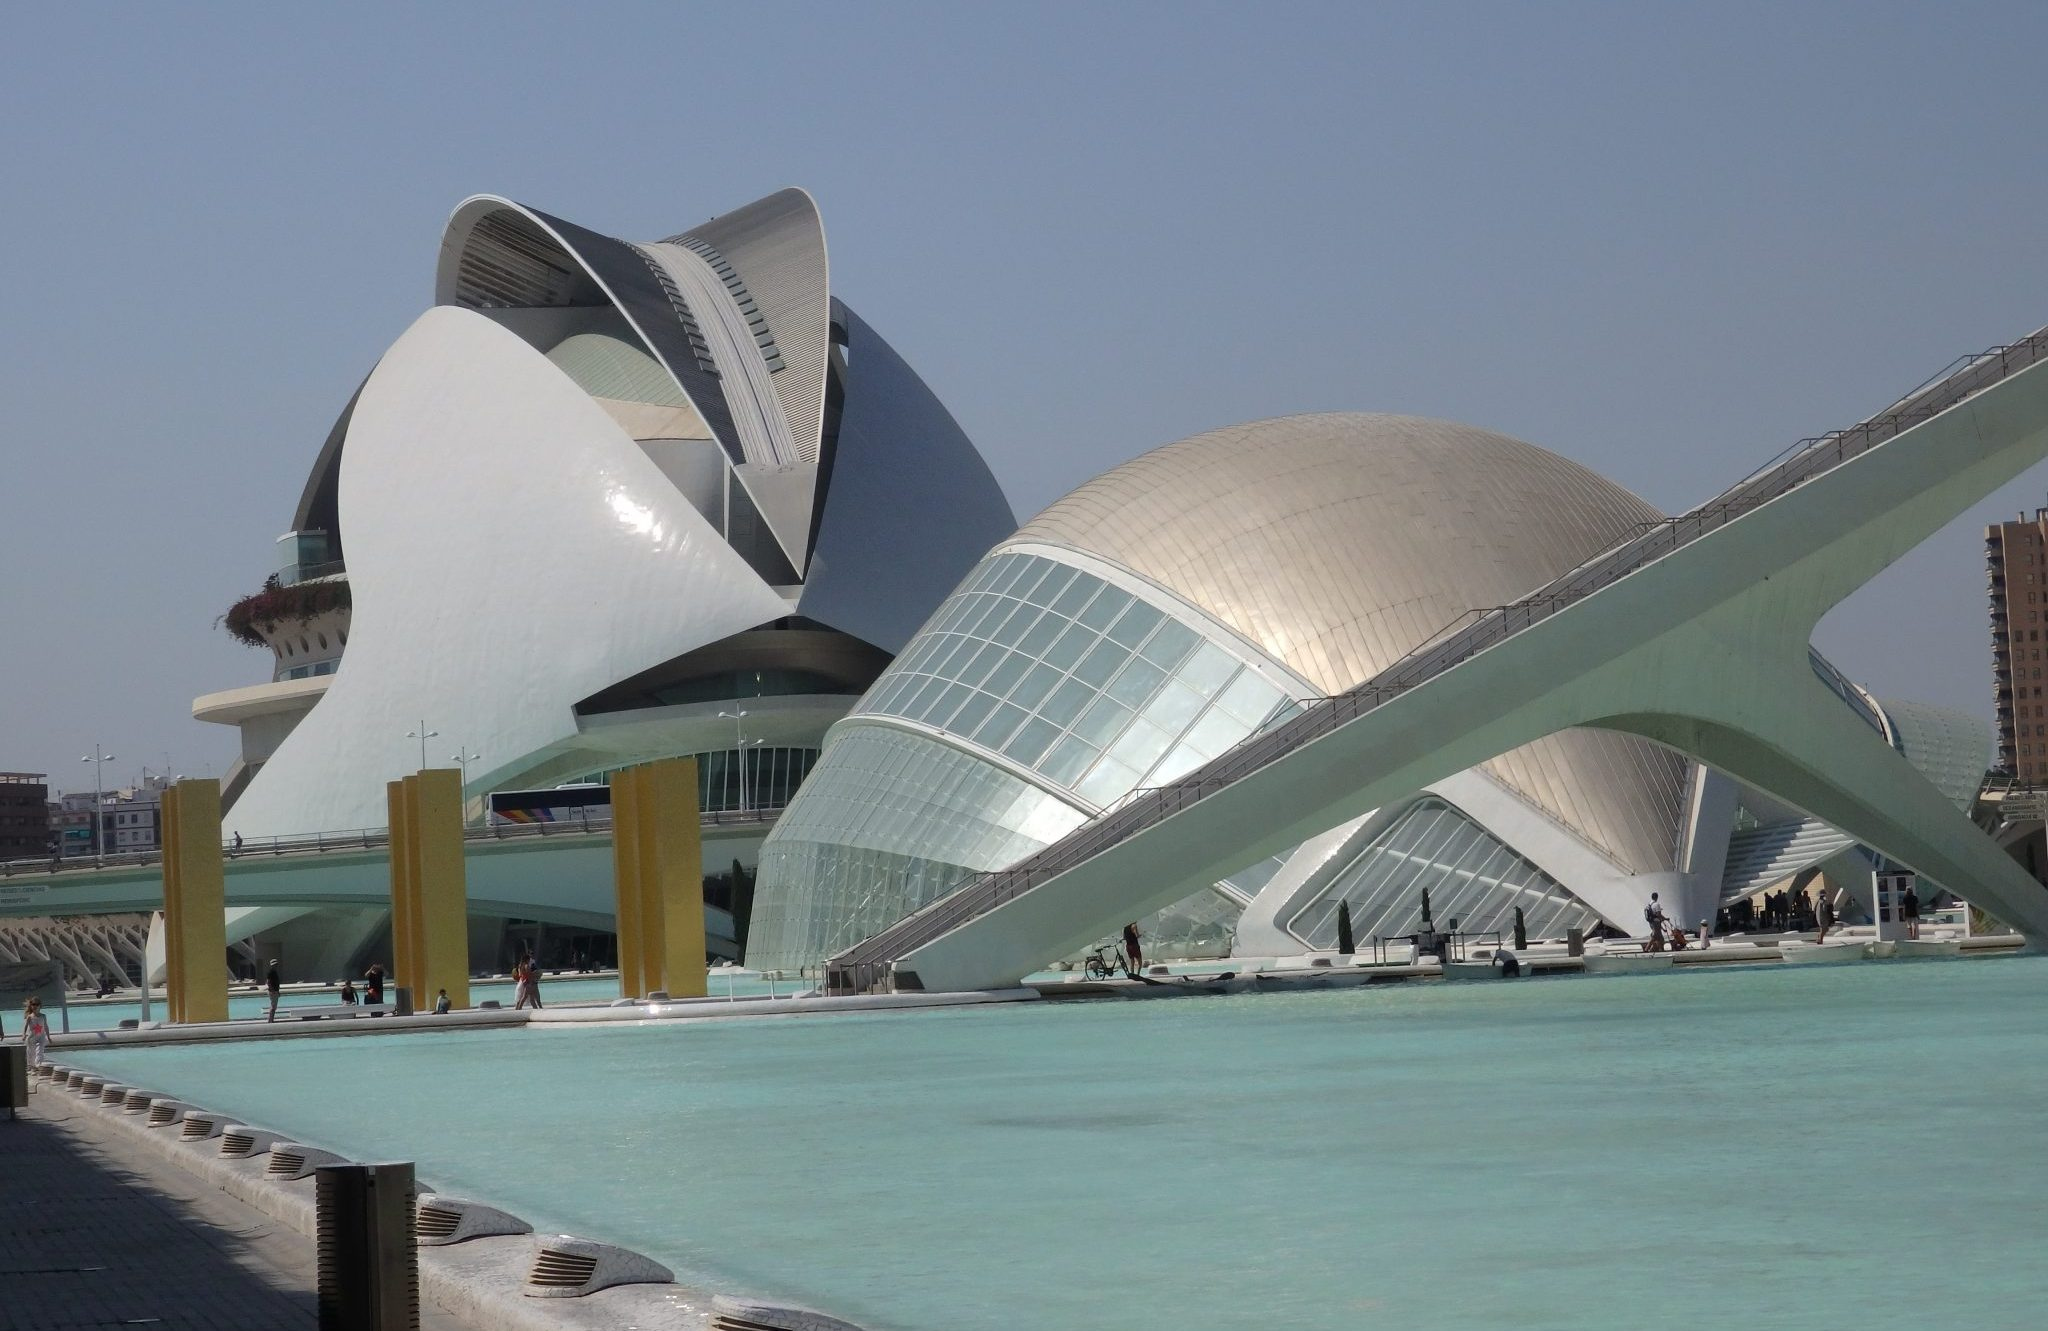 In the background, the Palau de les Arts. In front of that, the IMAX theater. At the City of Arts and Sciences in Valencia, Spain